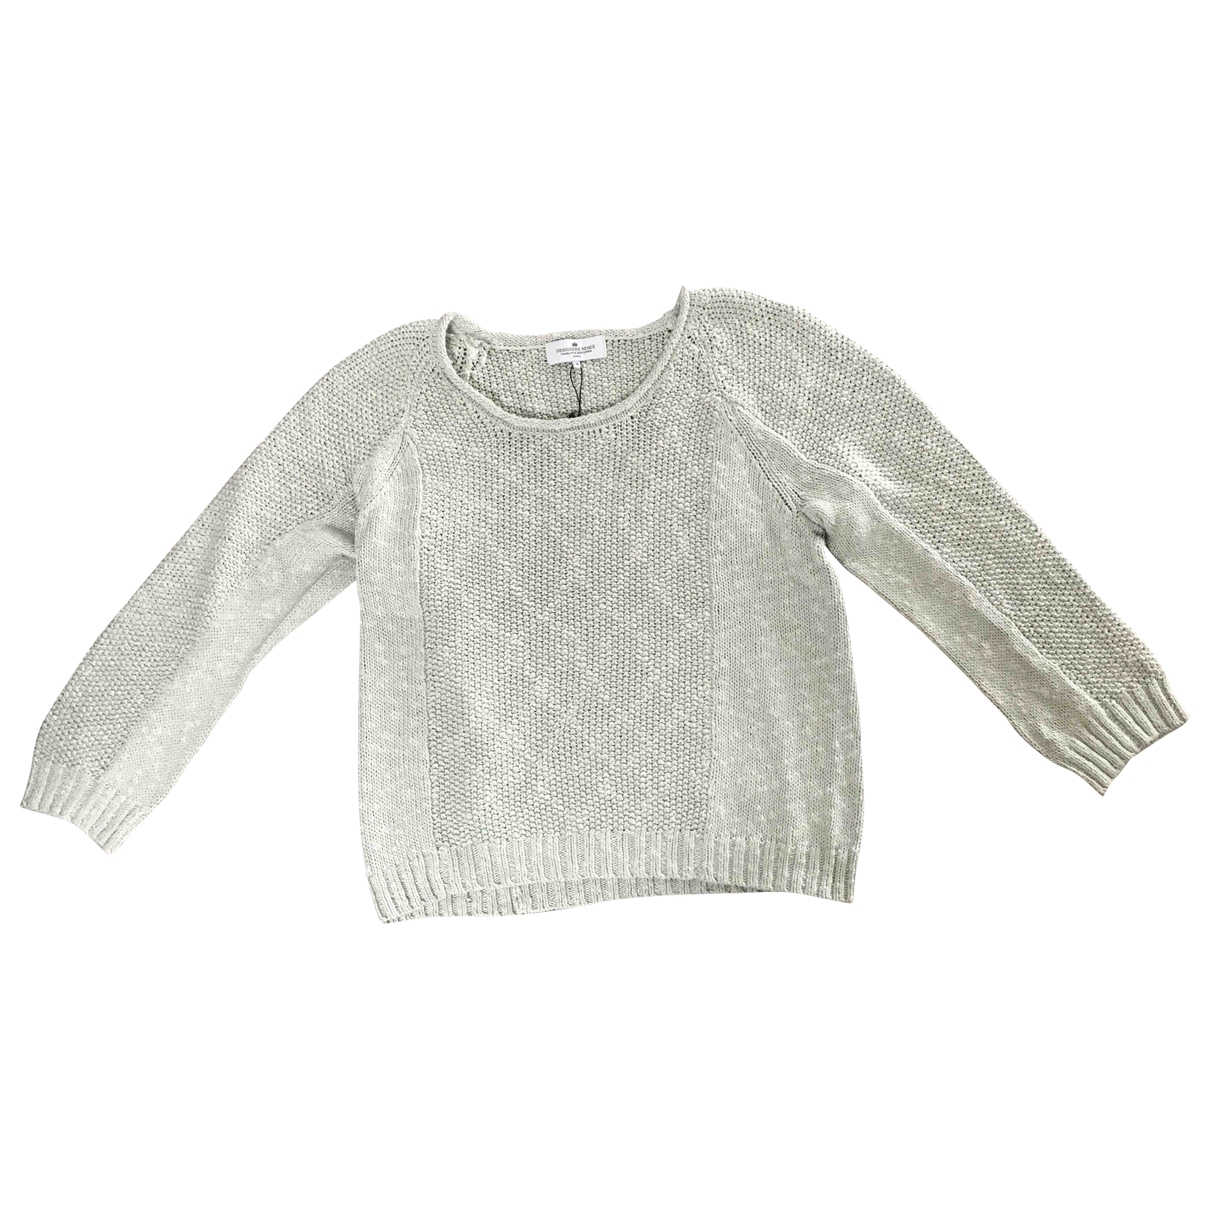 Designers Remix \N Beige Cotton Knitwear for Women M International